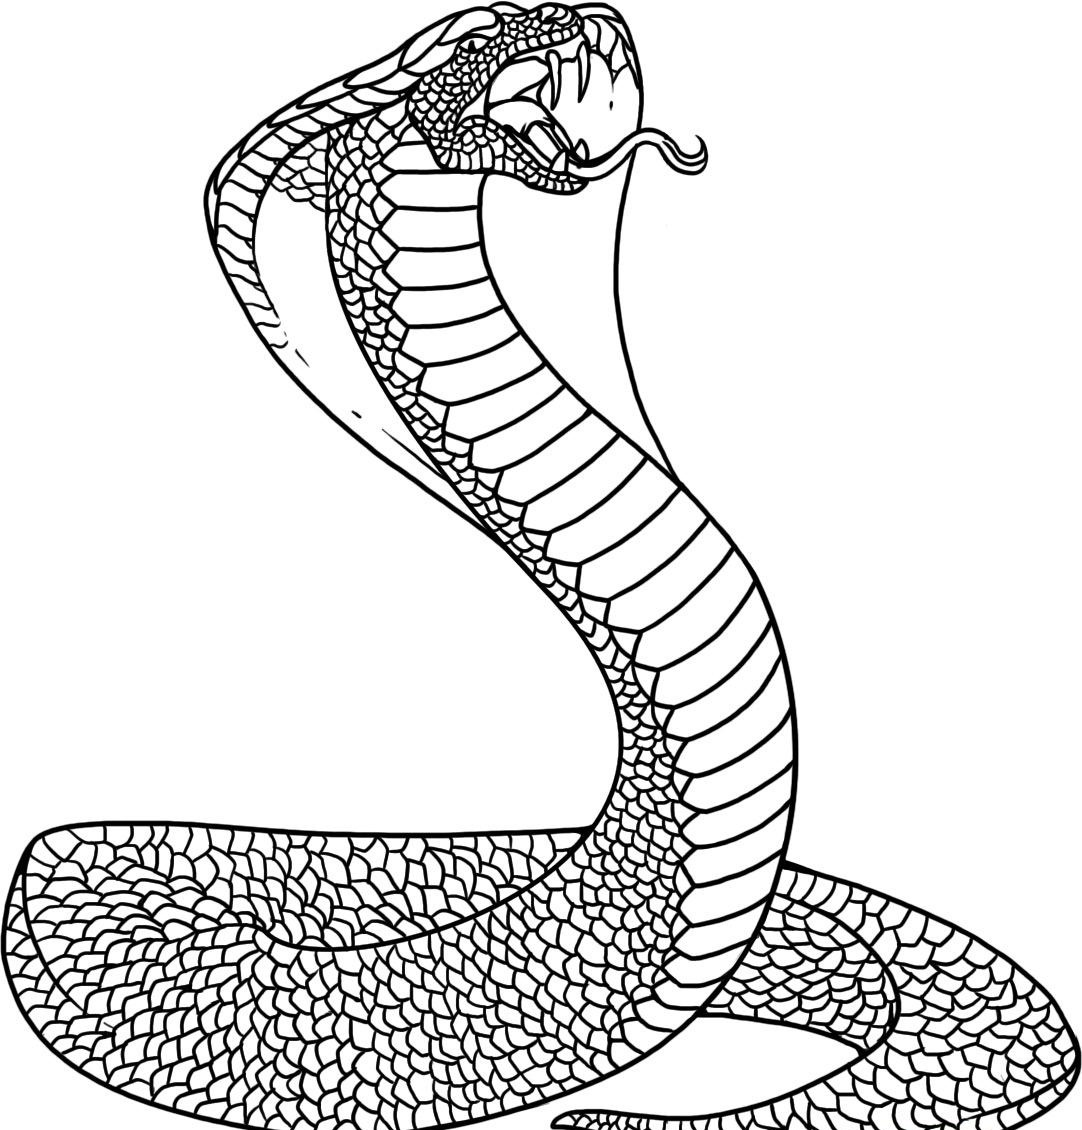 snake pictures for coloring get this snake coloring pages free printable 76955 coloring pictures snake for